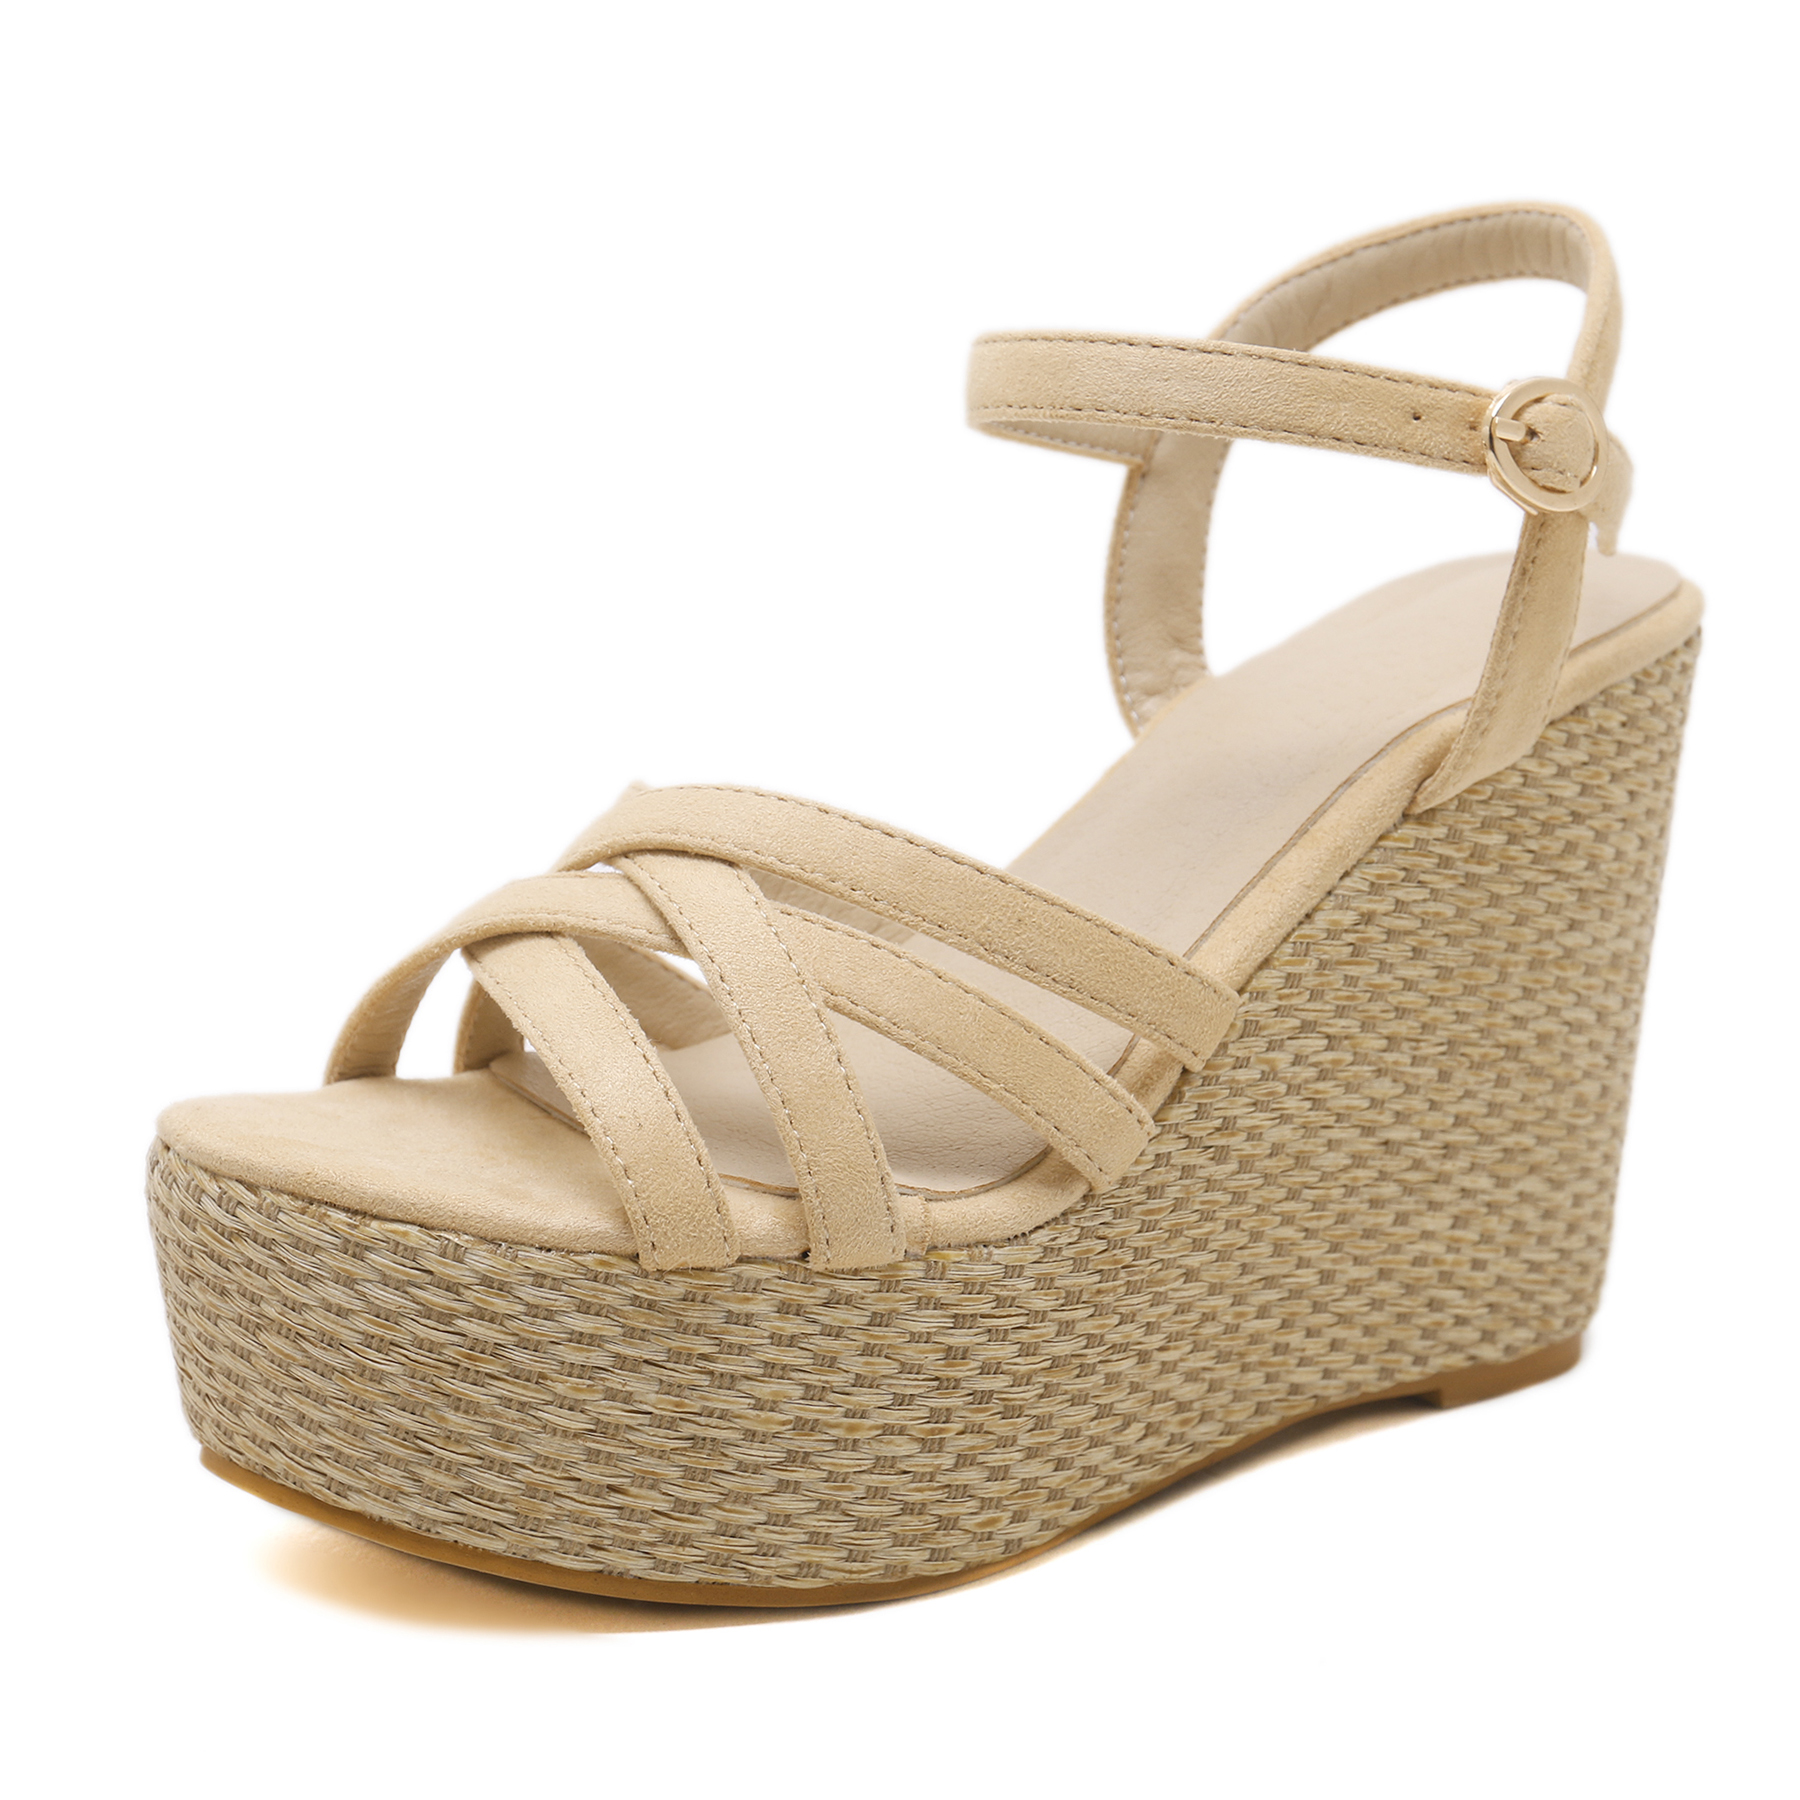 Block heel shoes Wedge women